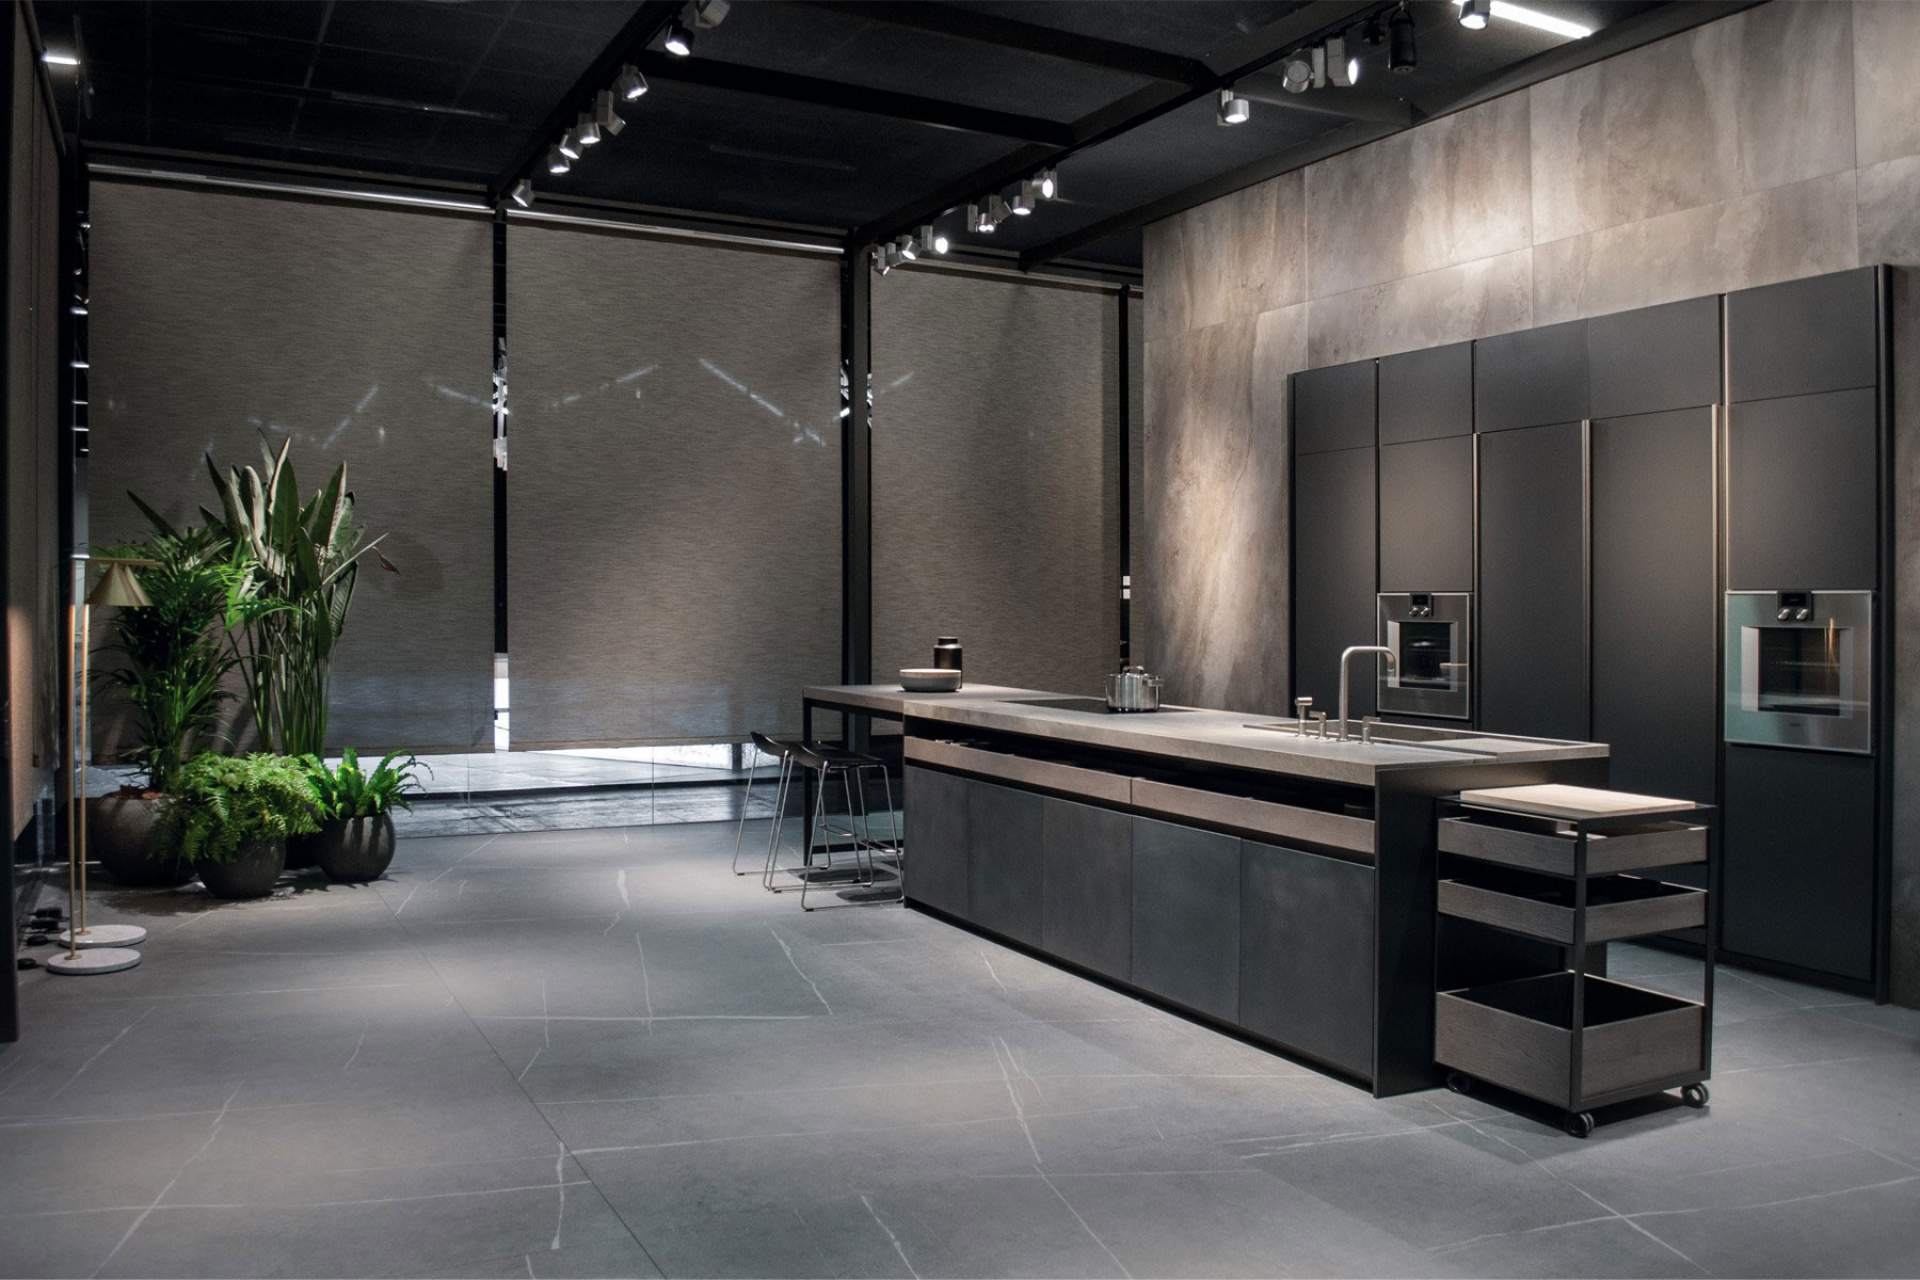 Fusion kitchen wall setting using grey natural tile